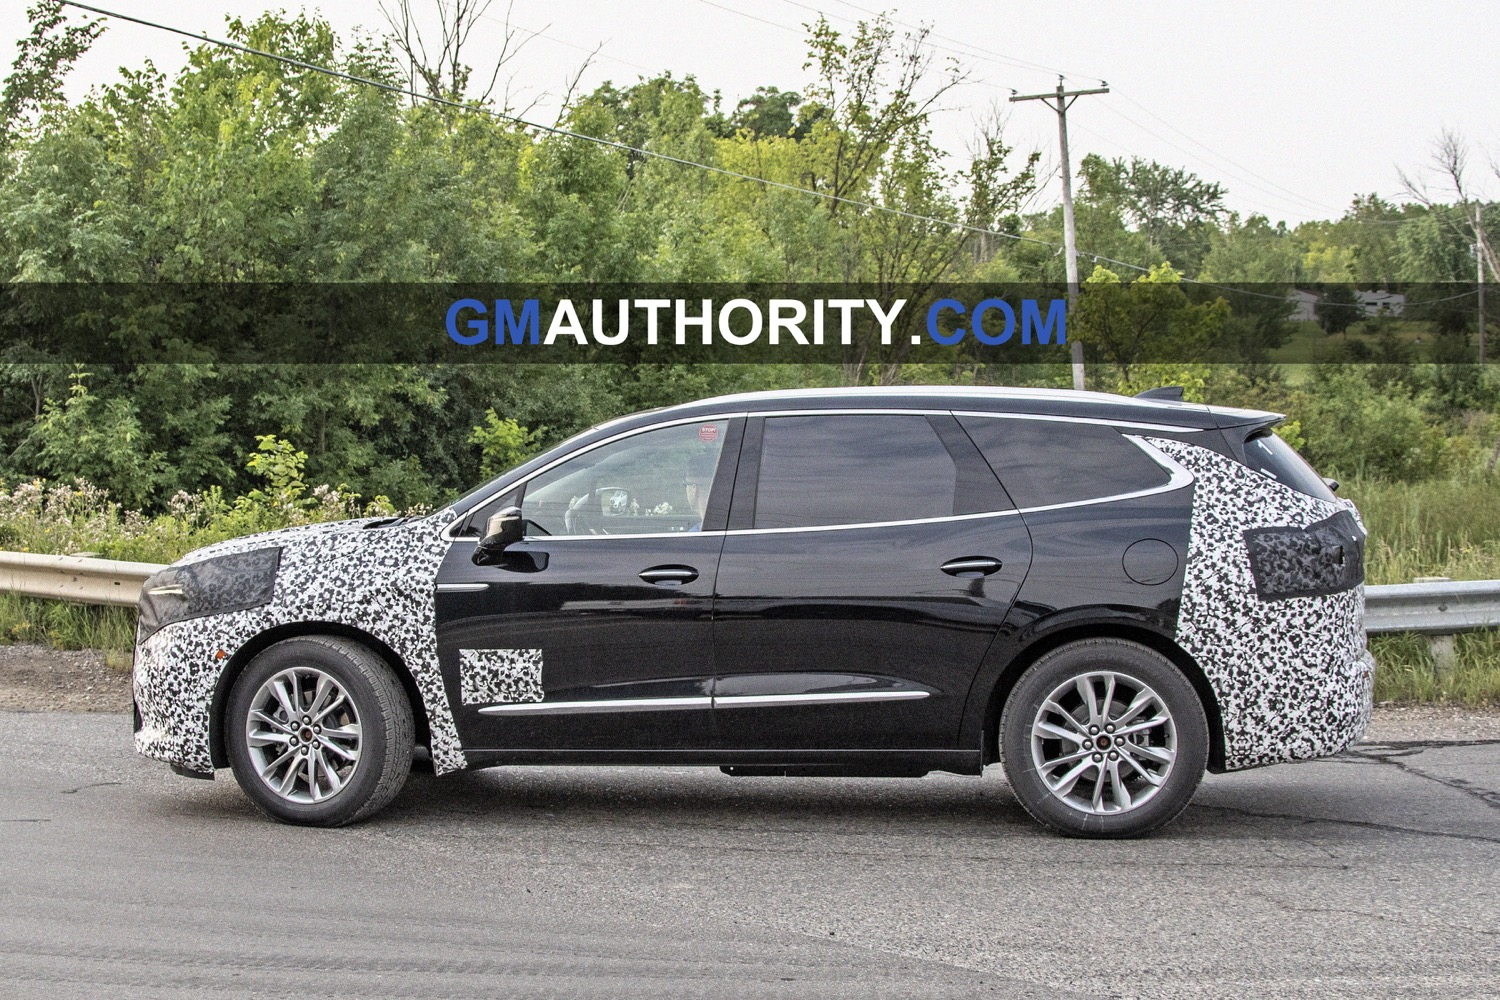 Buick Enclave Refresh Pushed Back To 2022 | Gm Authority 2022 Buick Enclave Consumer Reviews, Color Options, Engine